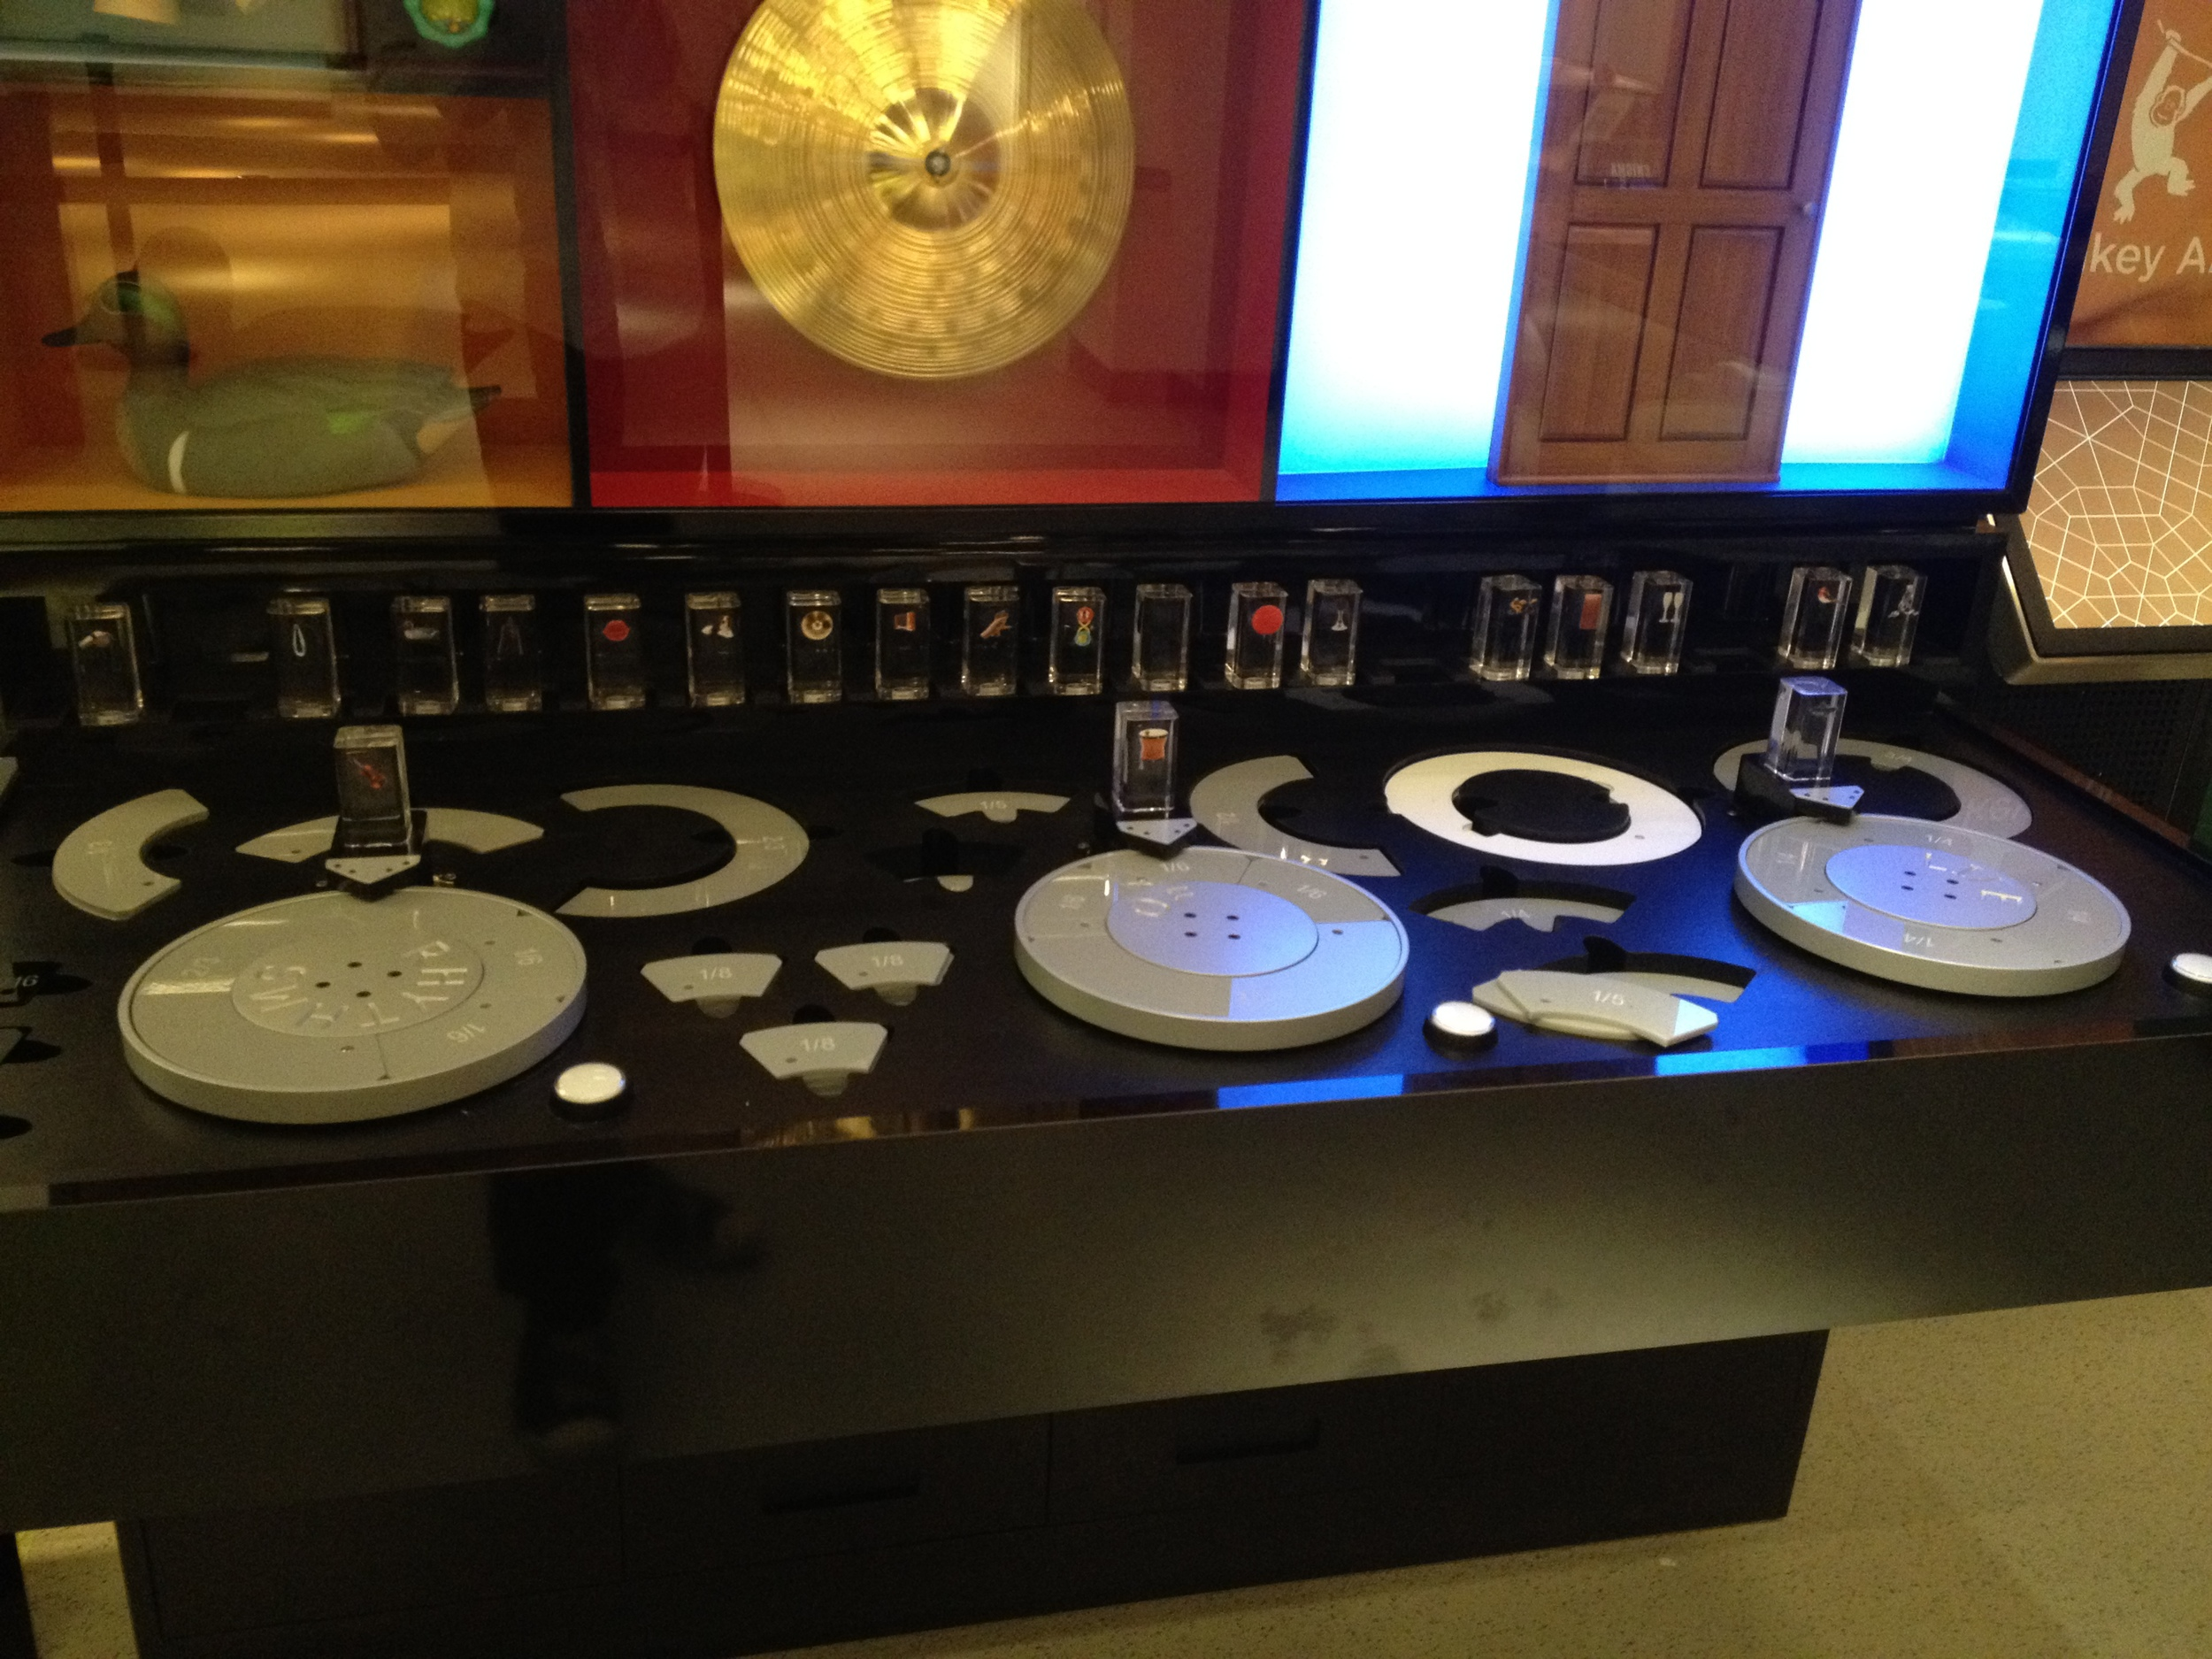 A neat music-making setup, each little block contains an RFID chip that actuates a different sound. The turntables rotate and trigger the sound with tempos matching the grey inserts (see next image)...